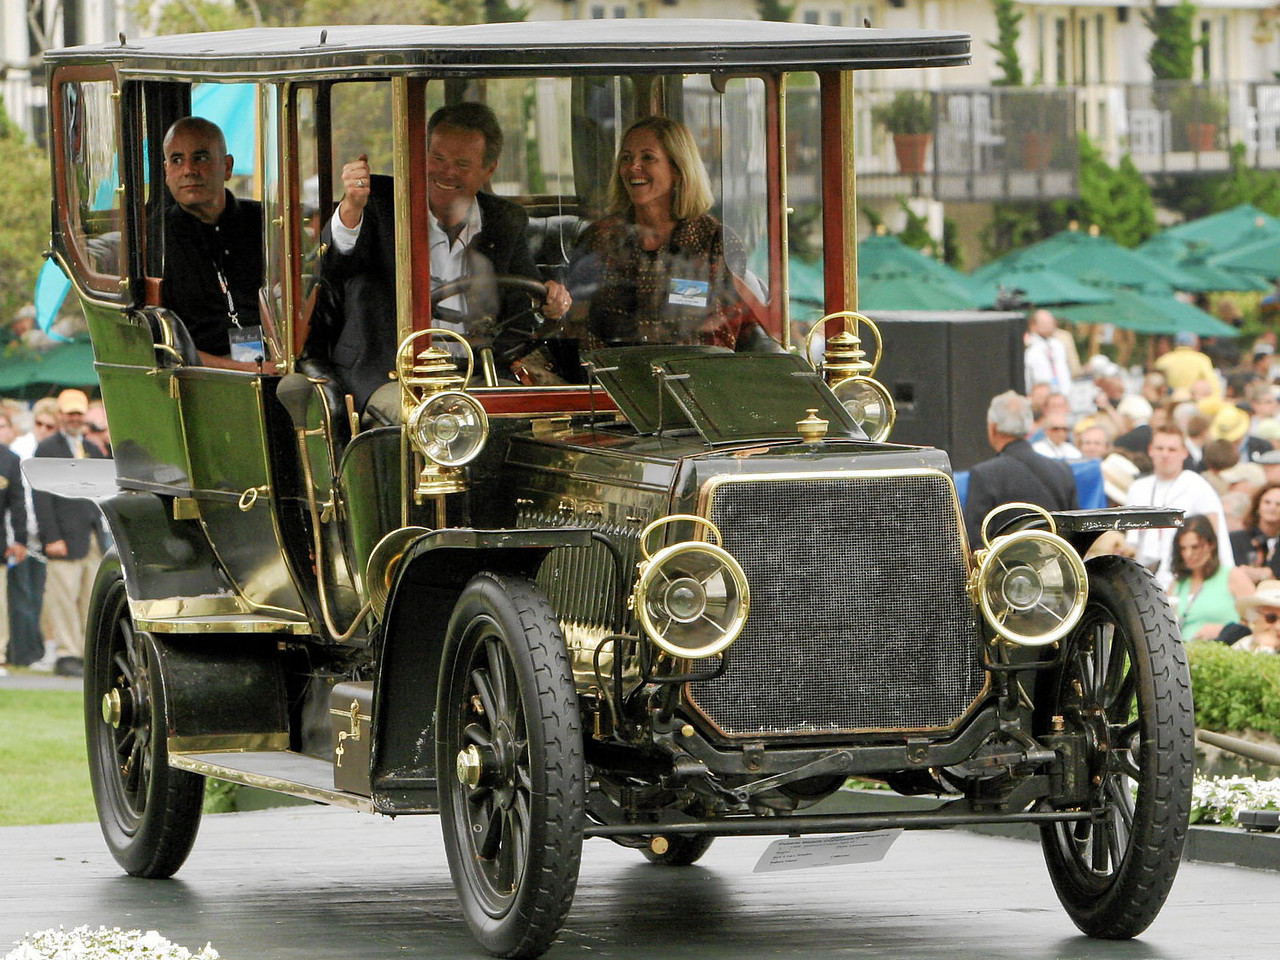 1906 Panhard et Levassor Type Q Regent Demi- Limousine owned by Rick and Lucy Rawlins from Balboa Island 1st Class L (Prewar Preservation)